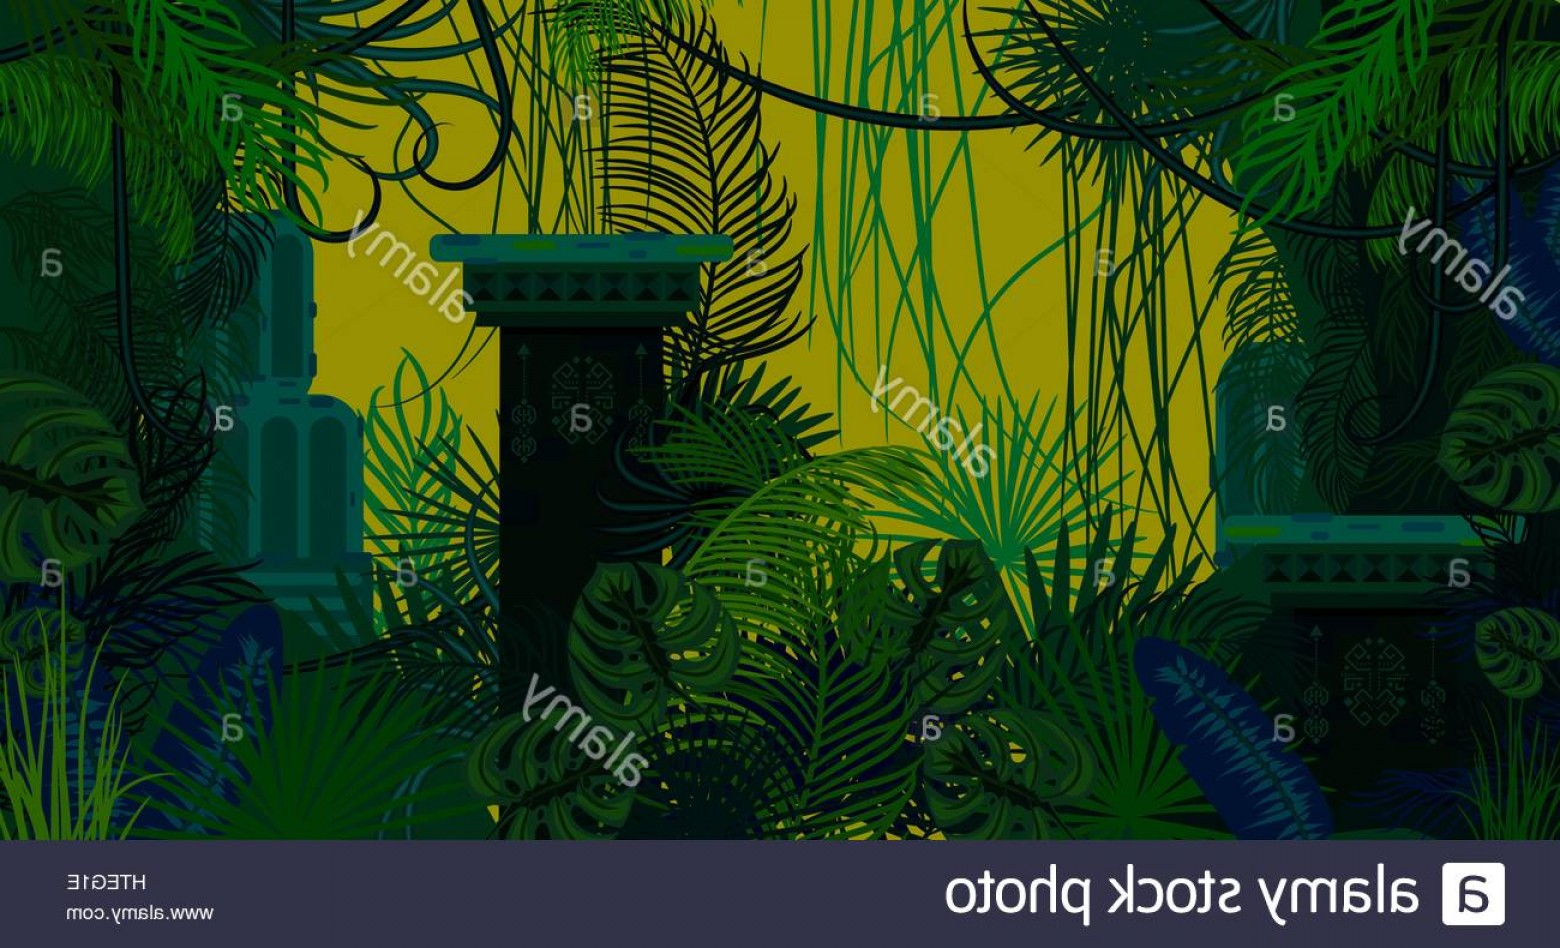 Ancient Jungle Statue Vector Images: Stock Photo Abandoned Ancient Jungle Nature Background Dark Green And Blue Palm